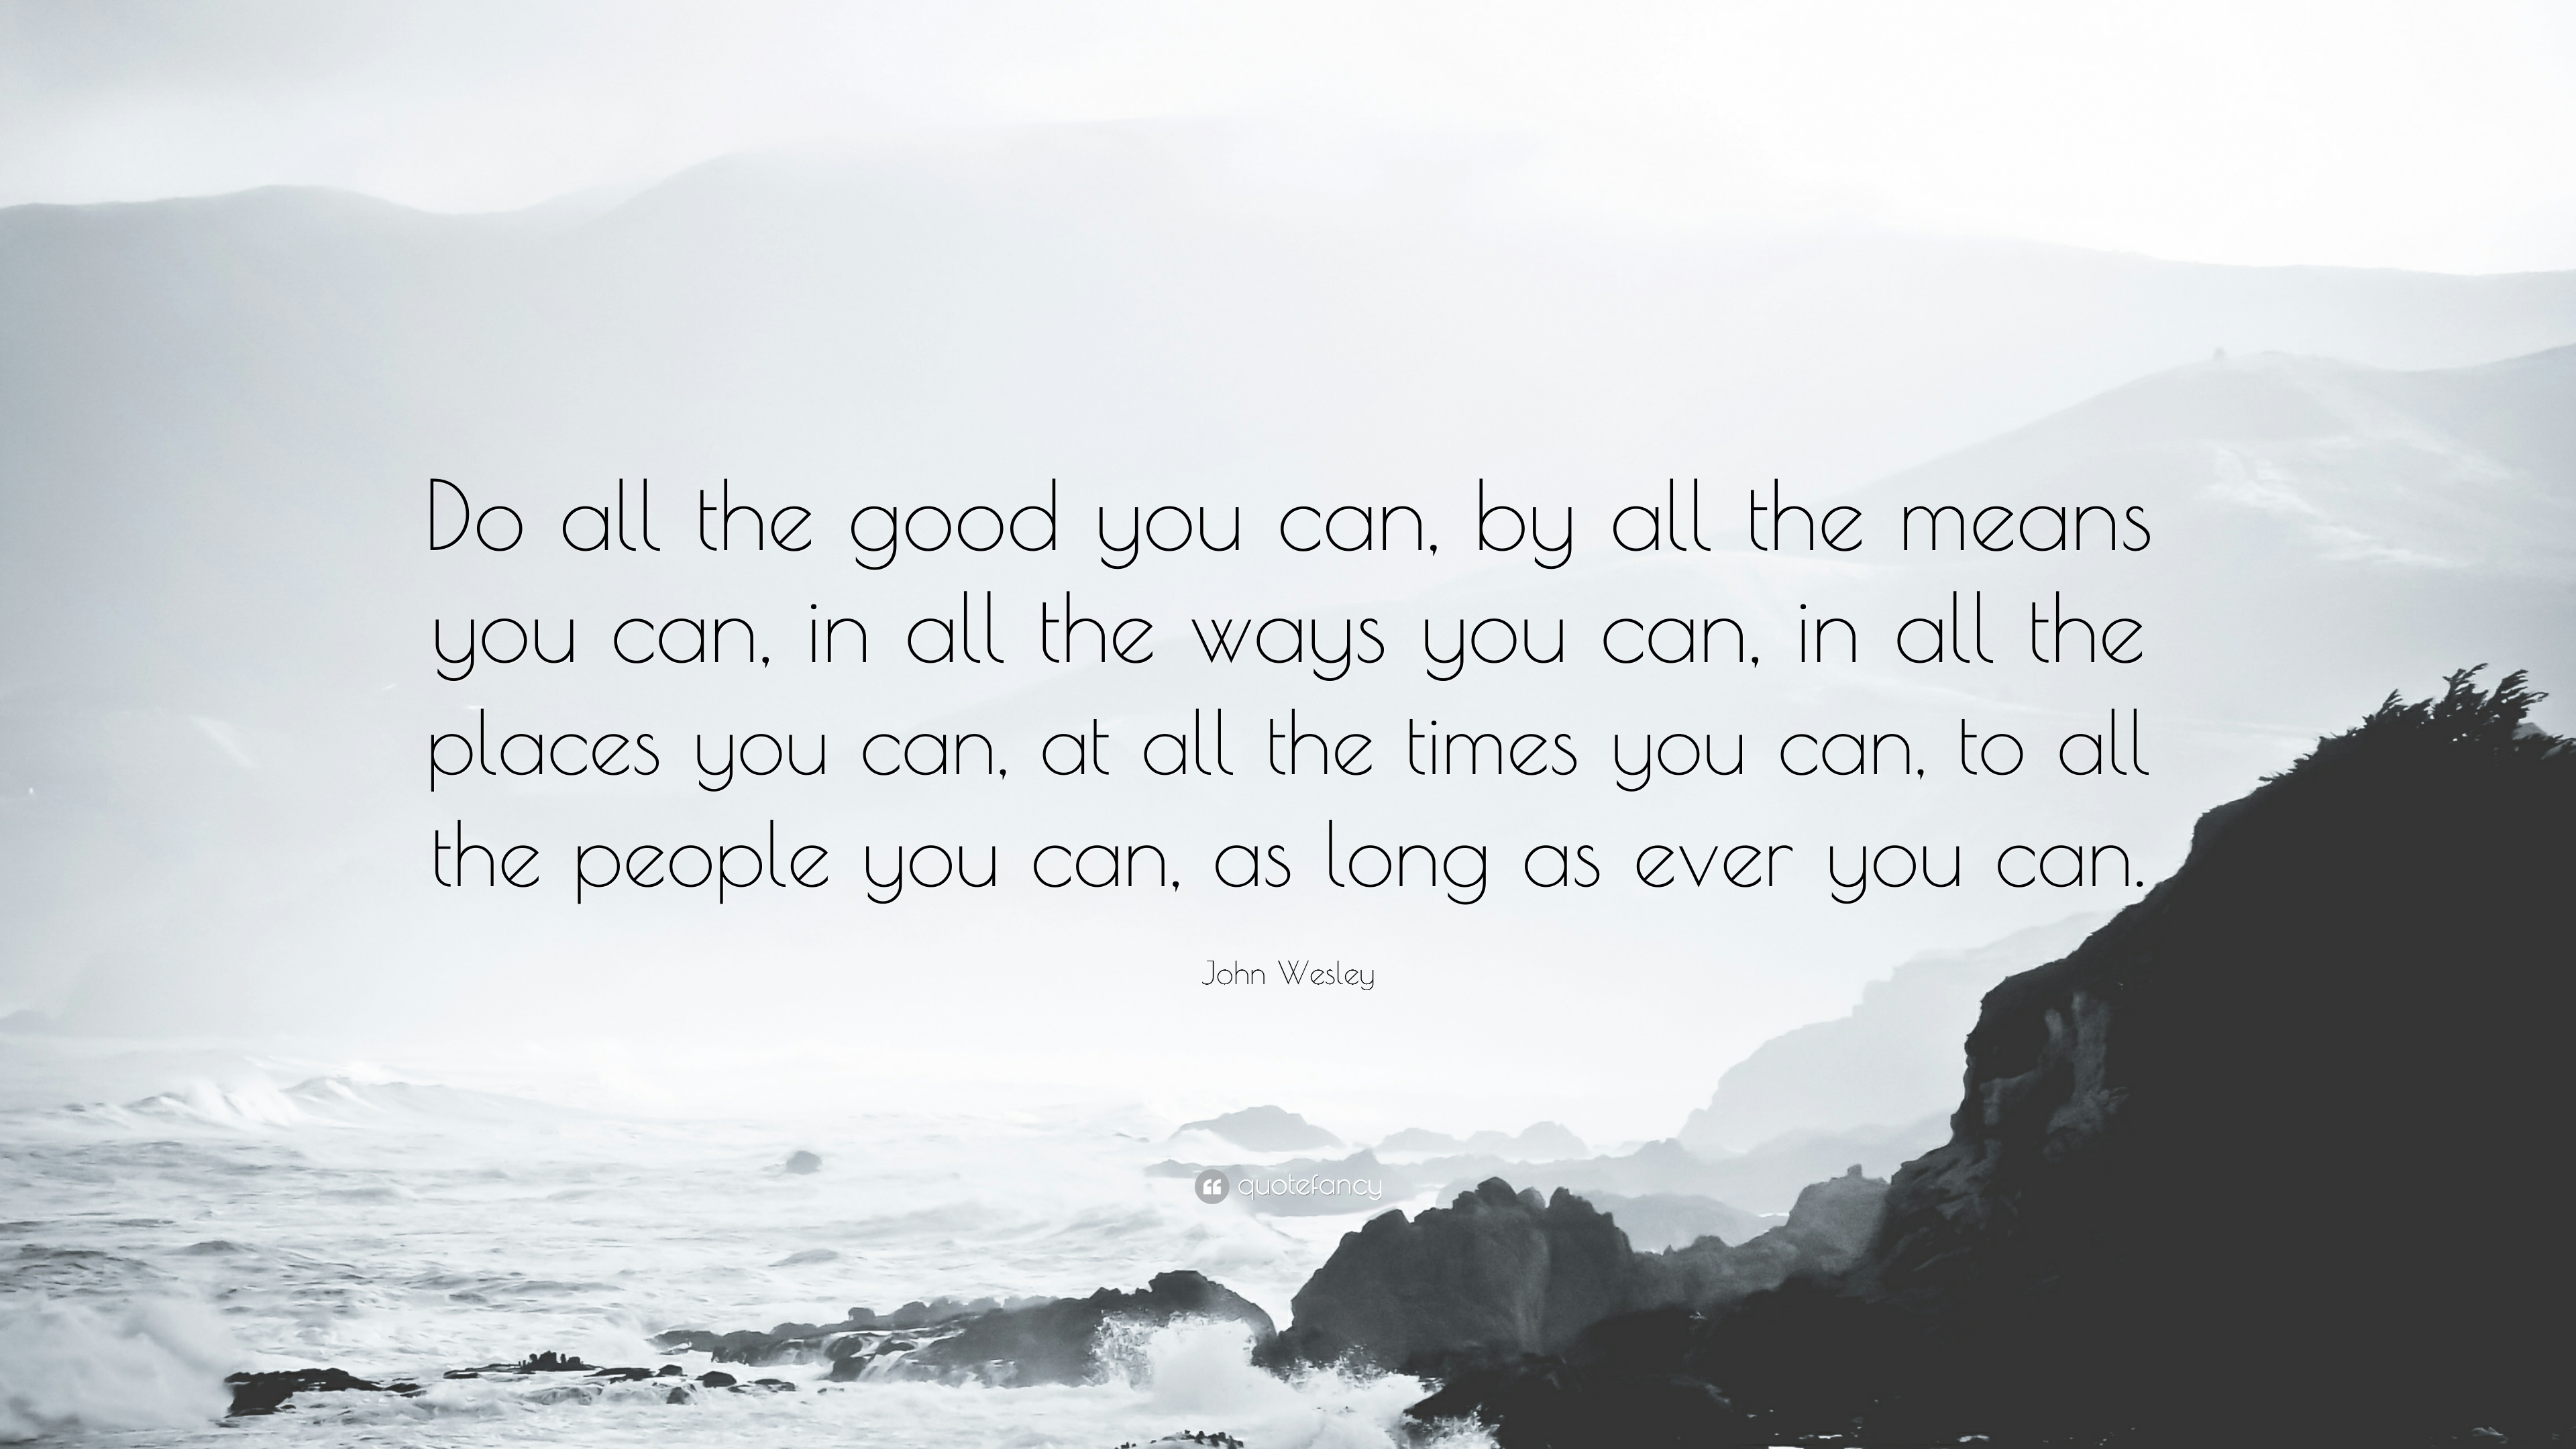 https://quotefancy.com/media/wallpaper/3840x2160/38351-John-Wesley-Quote-Do-all-the-good-you-can-by-all-the-means-you-can.jpg